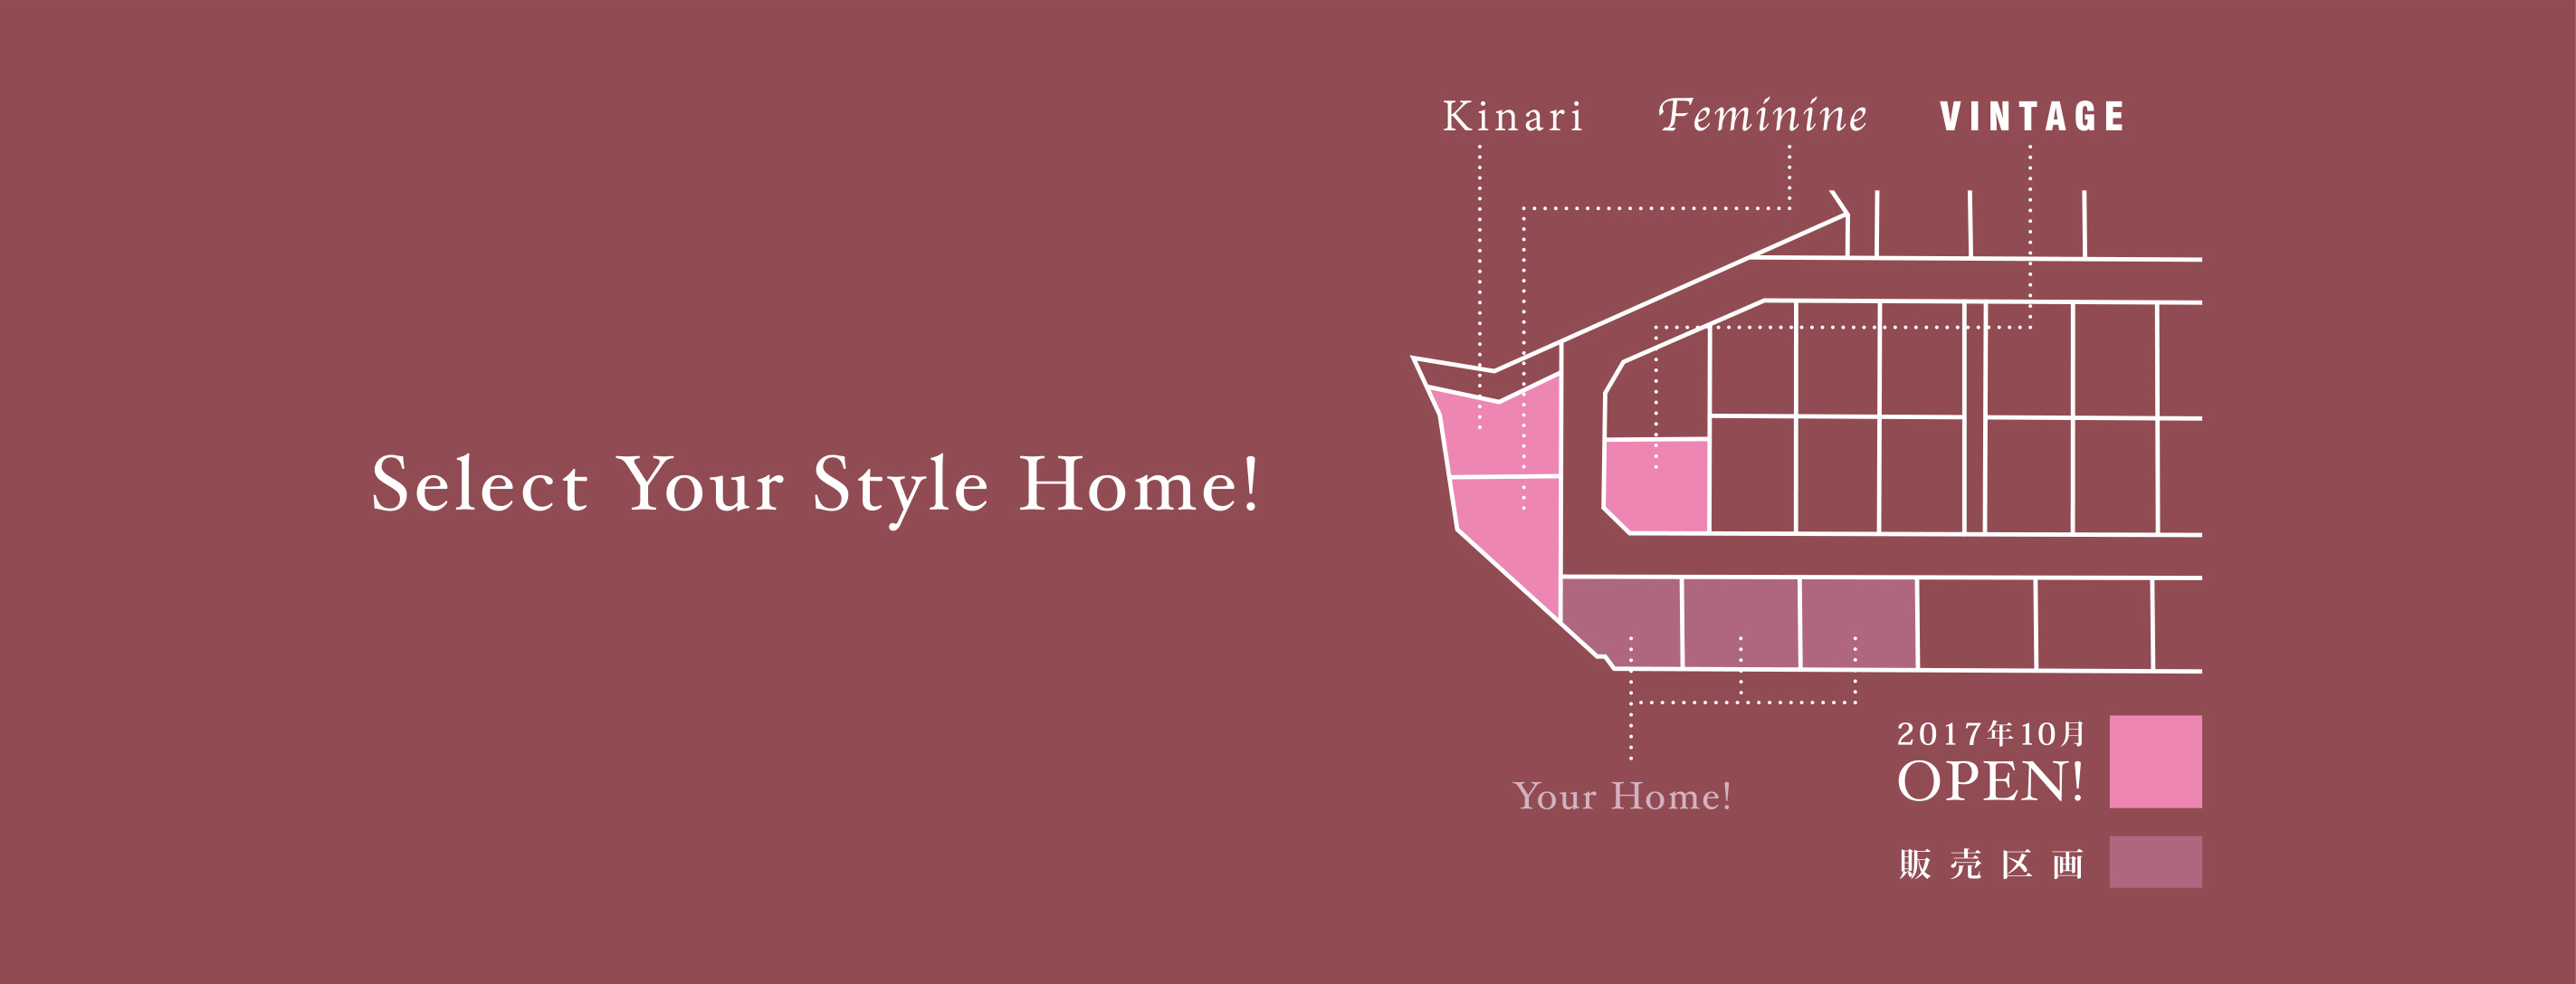 Select your style home!